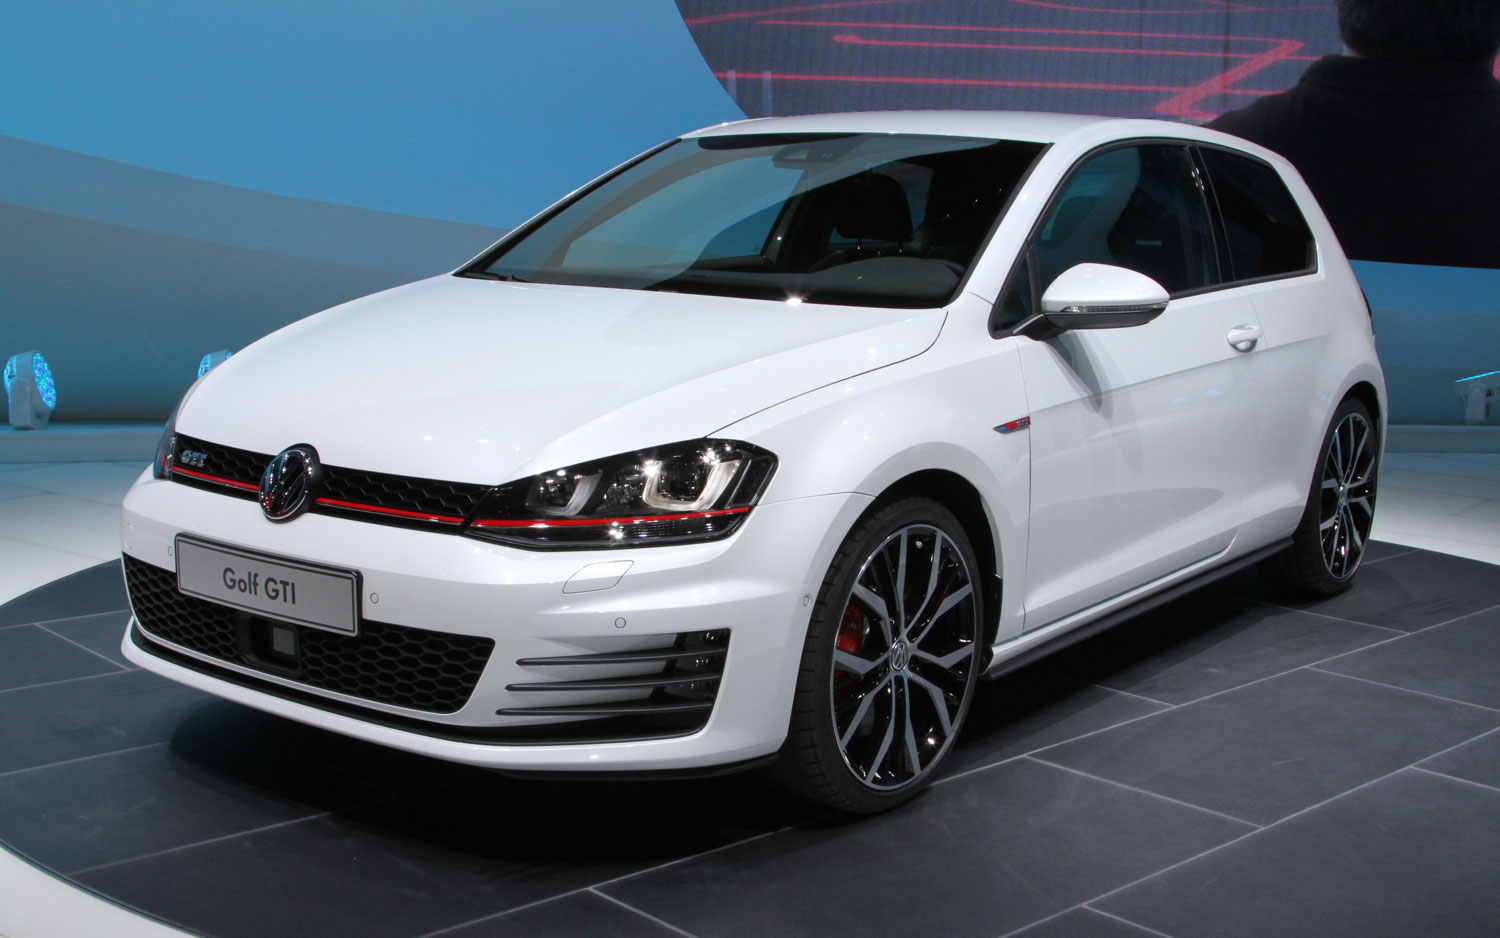 2015 Volkswagen GTI Front Left View1